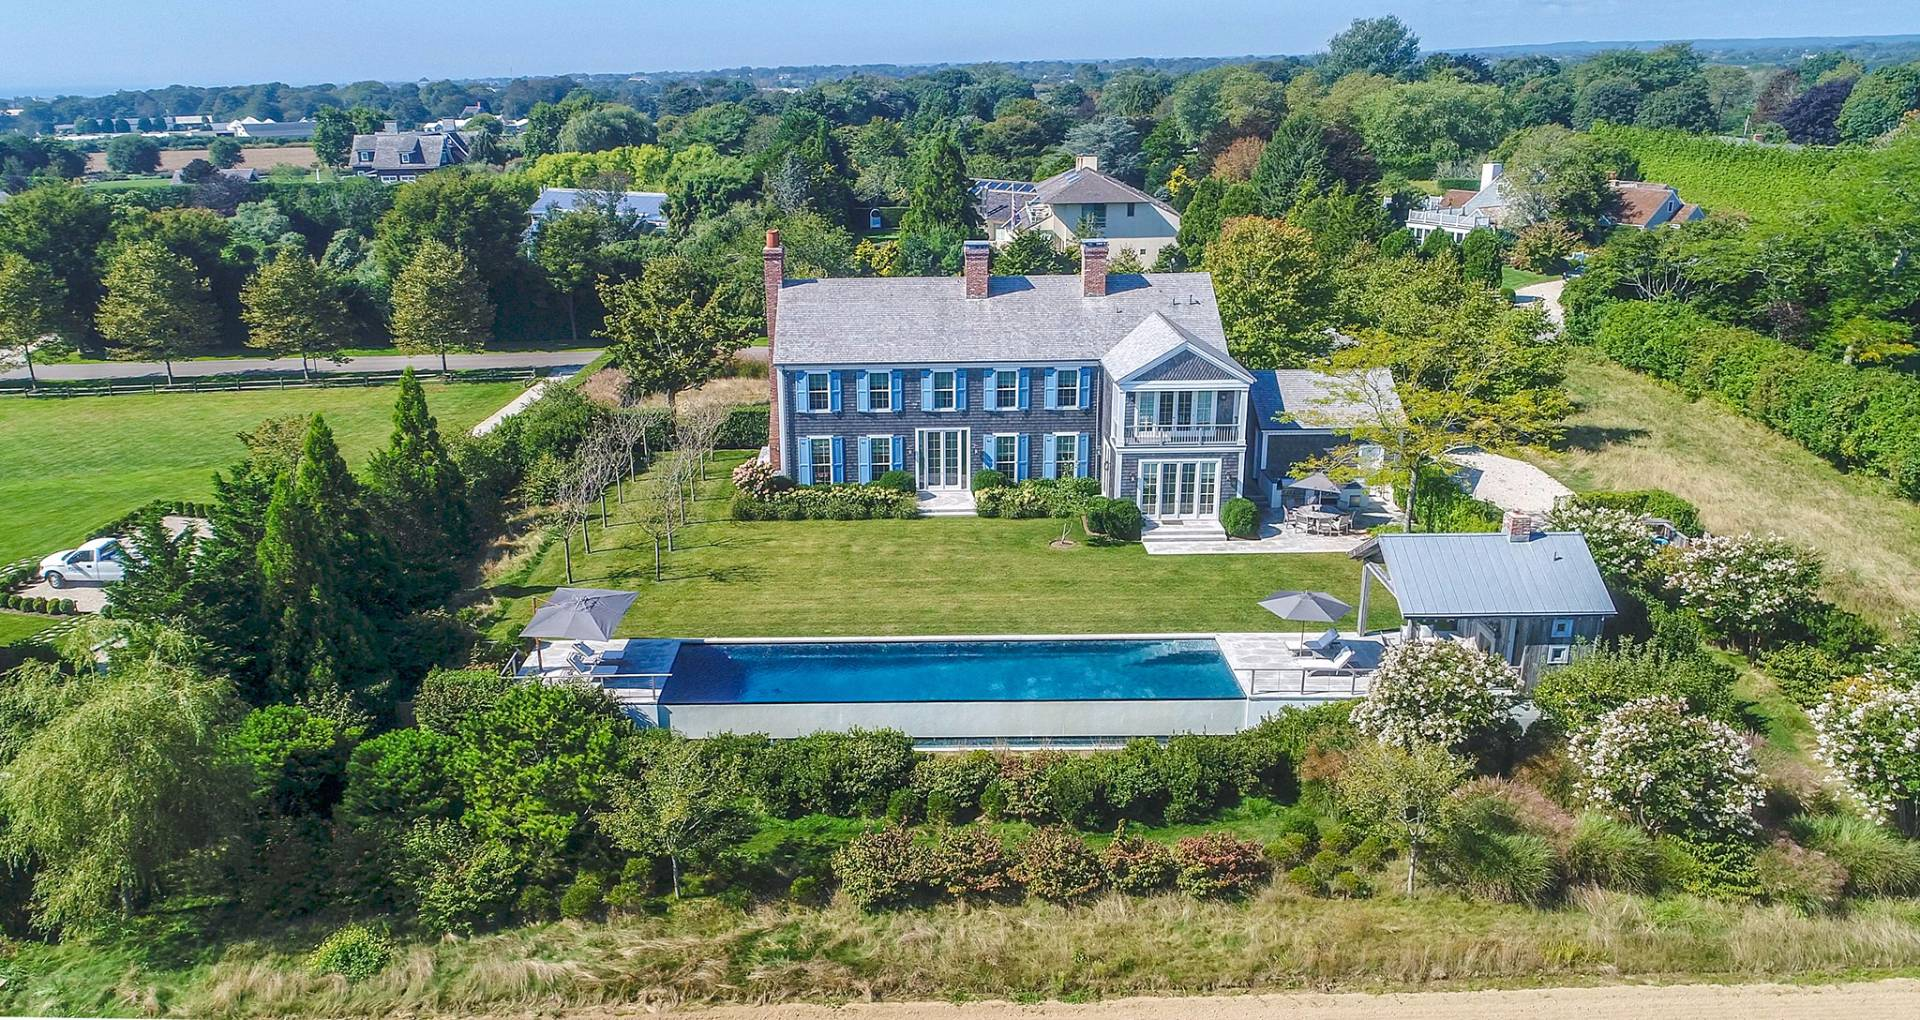 Casa Unifamiliar por un Venta en Custom Traditional Overlooking Reserve 53 Fairfield Pond Lane, Sagaponack, Nueva York